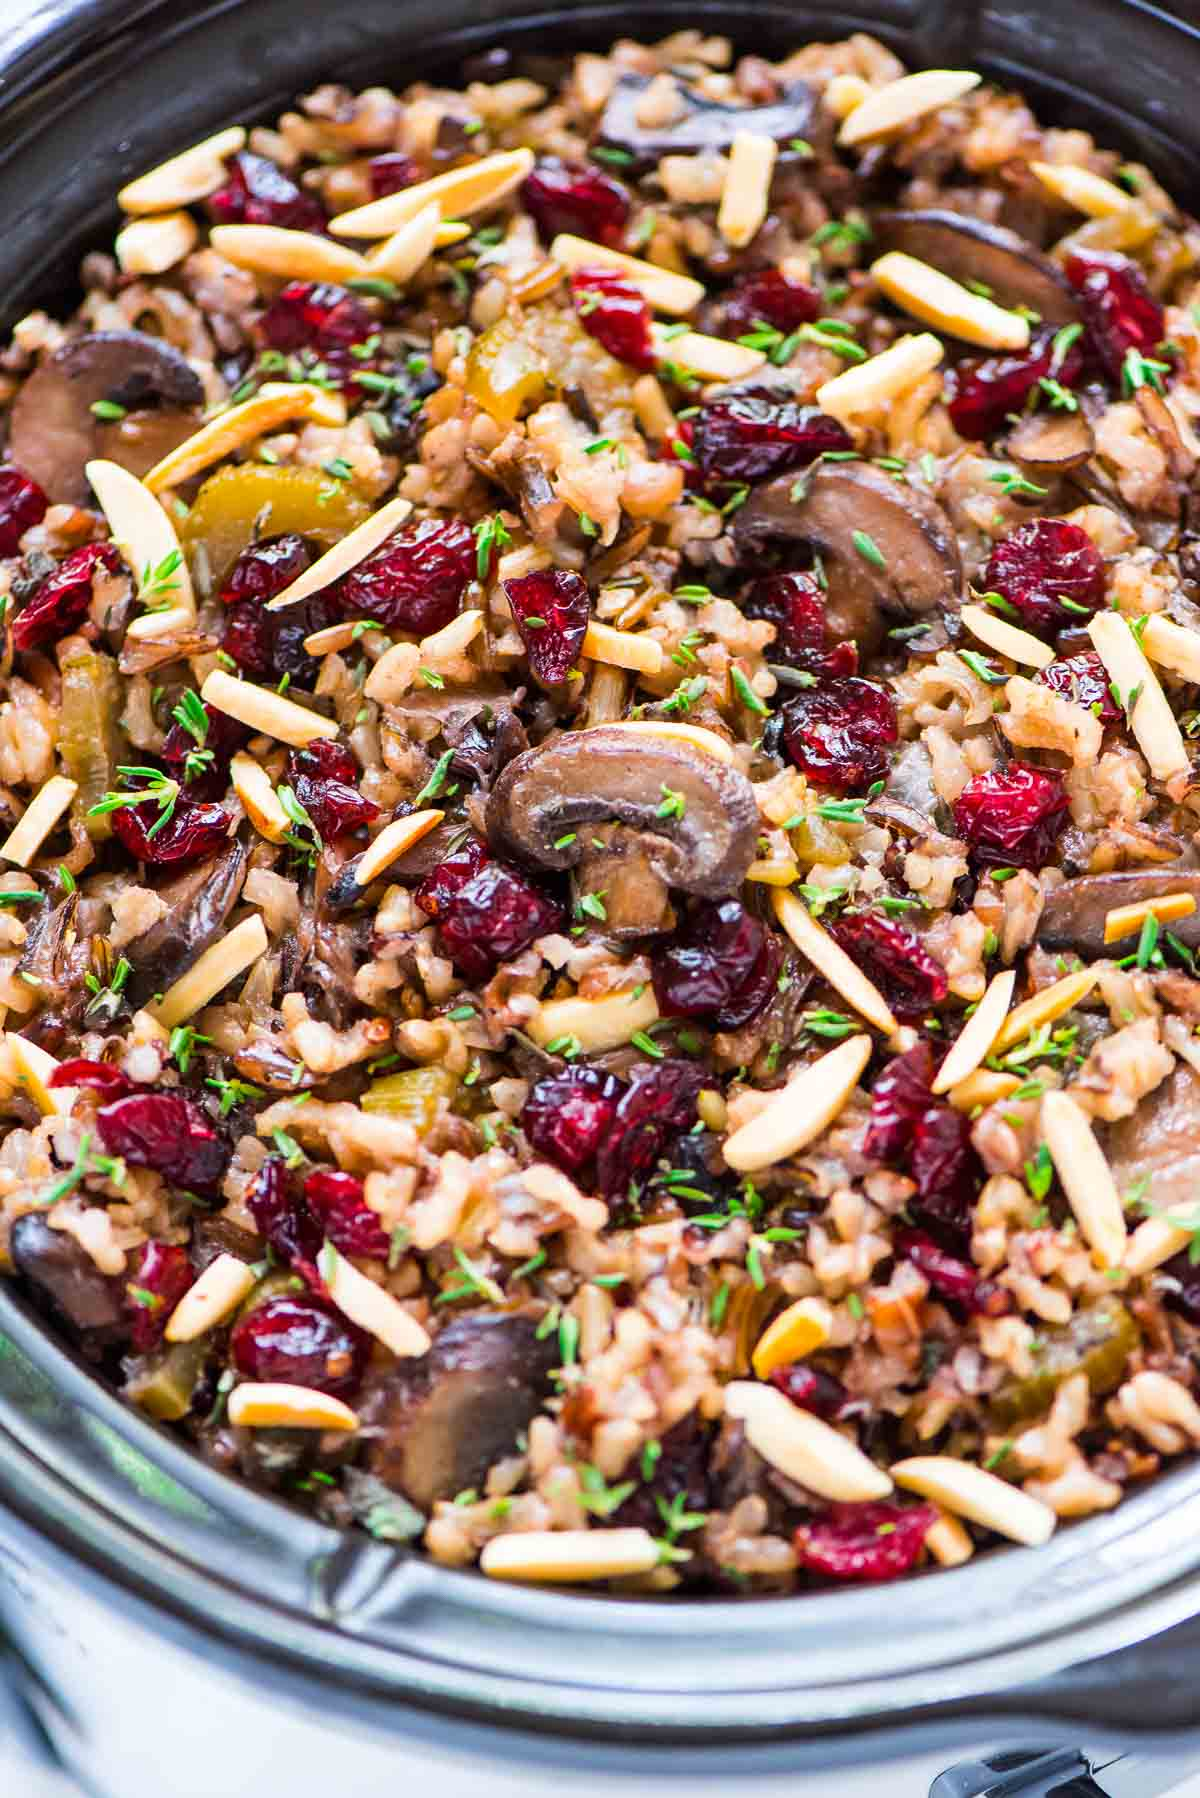 Crockpot Stuffing with Wild Rice Cranberries and Almonds